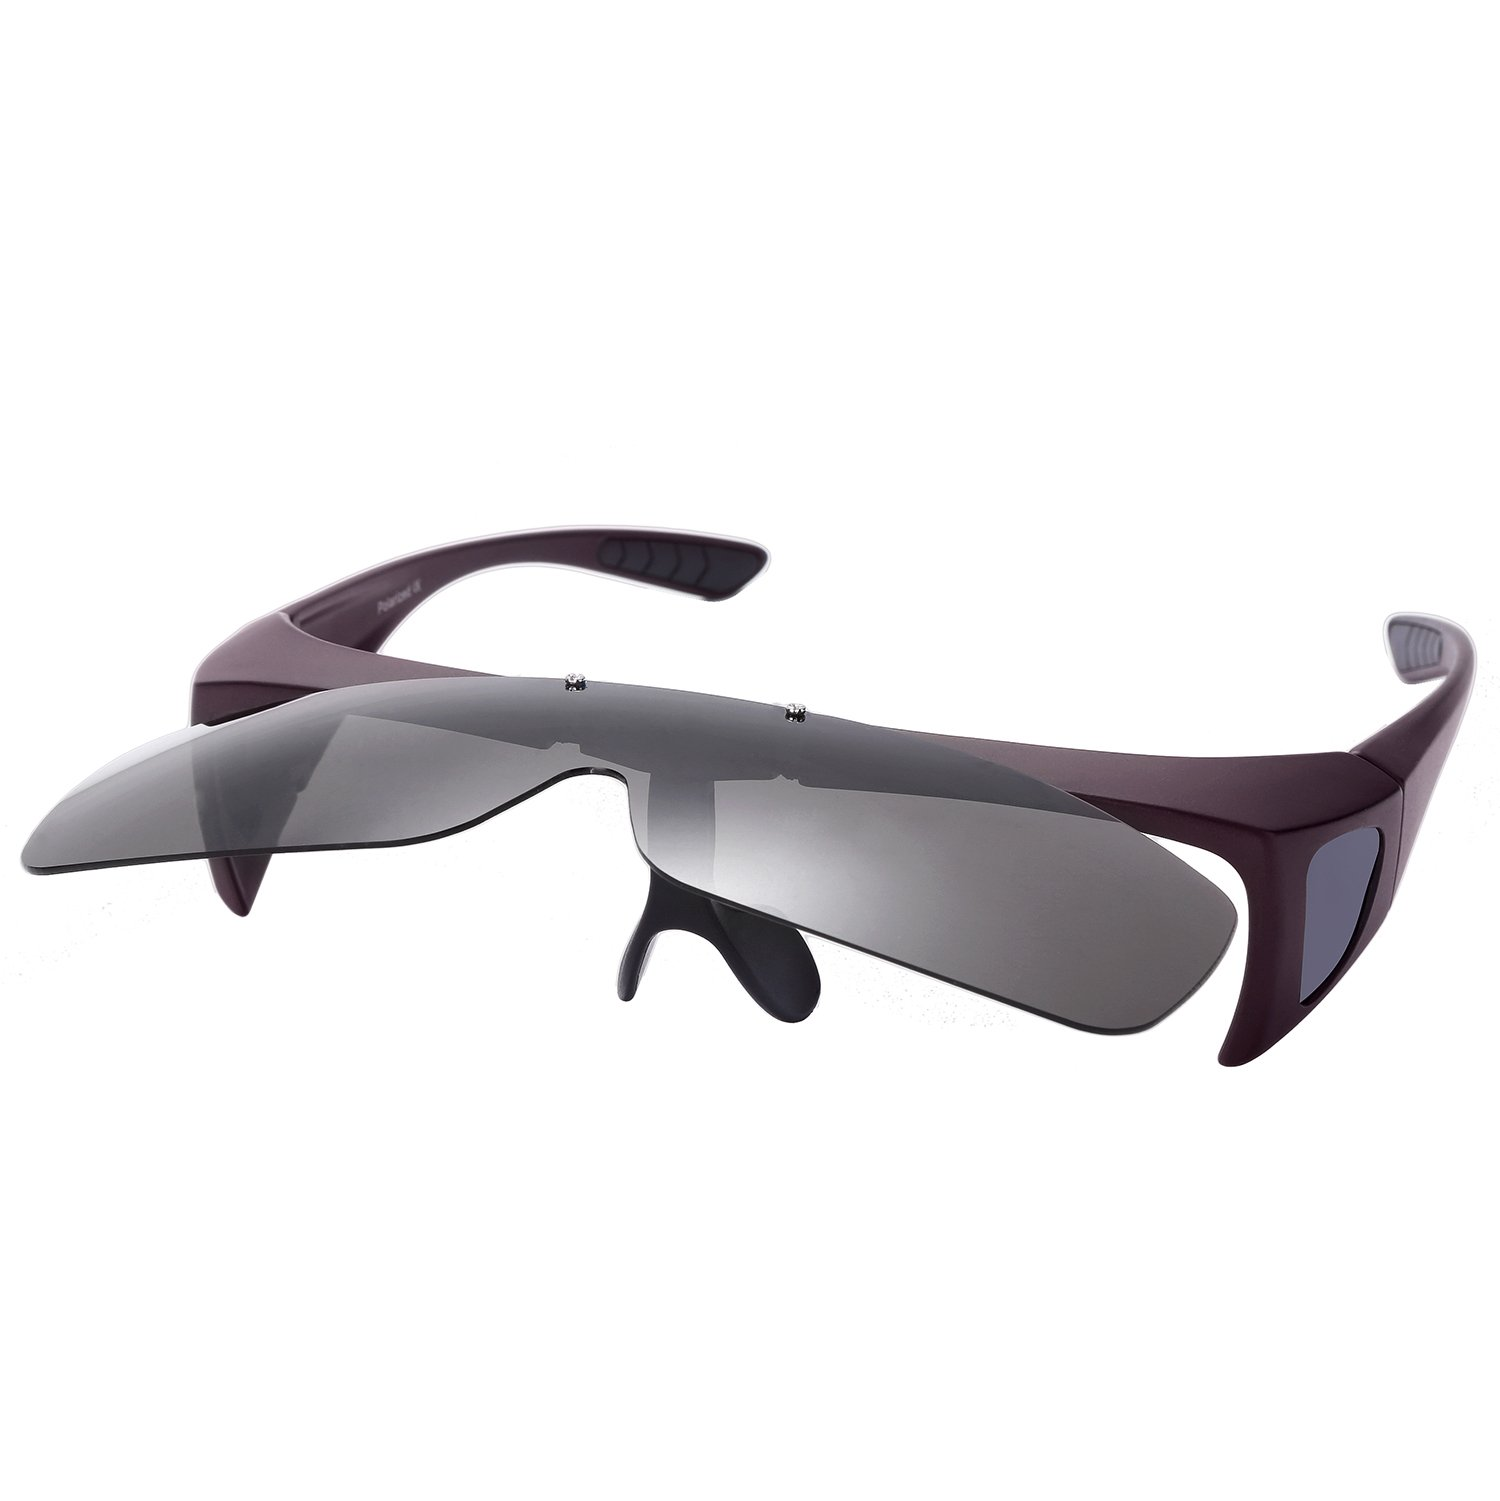 O-LET Fit Over Prescription Glasses Sunglasses Women Men Driving (Purple Frame/Grey Lens, 77)